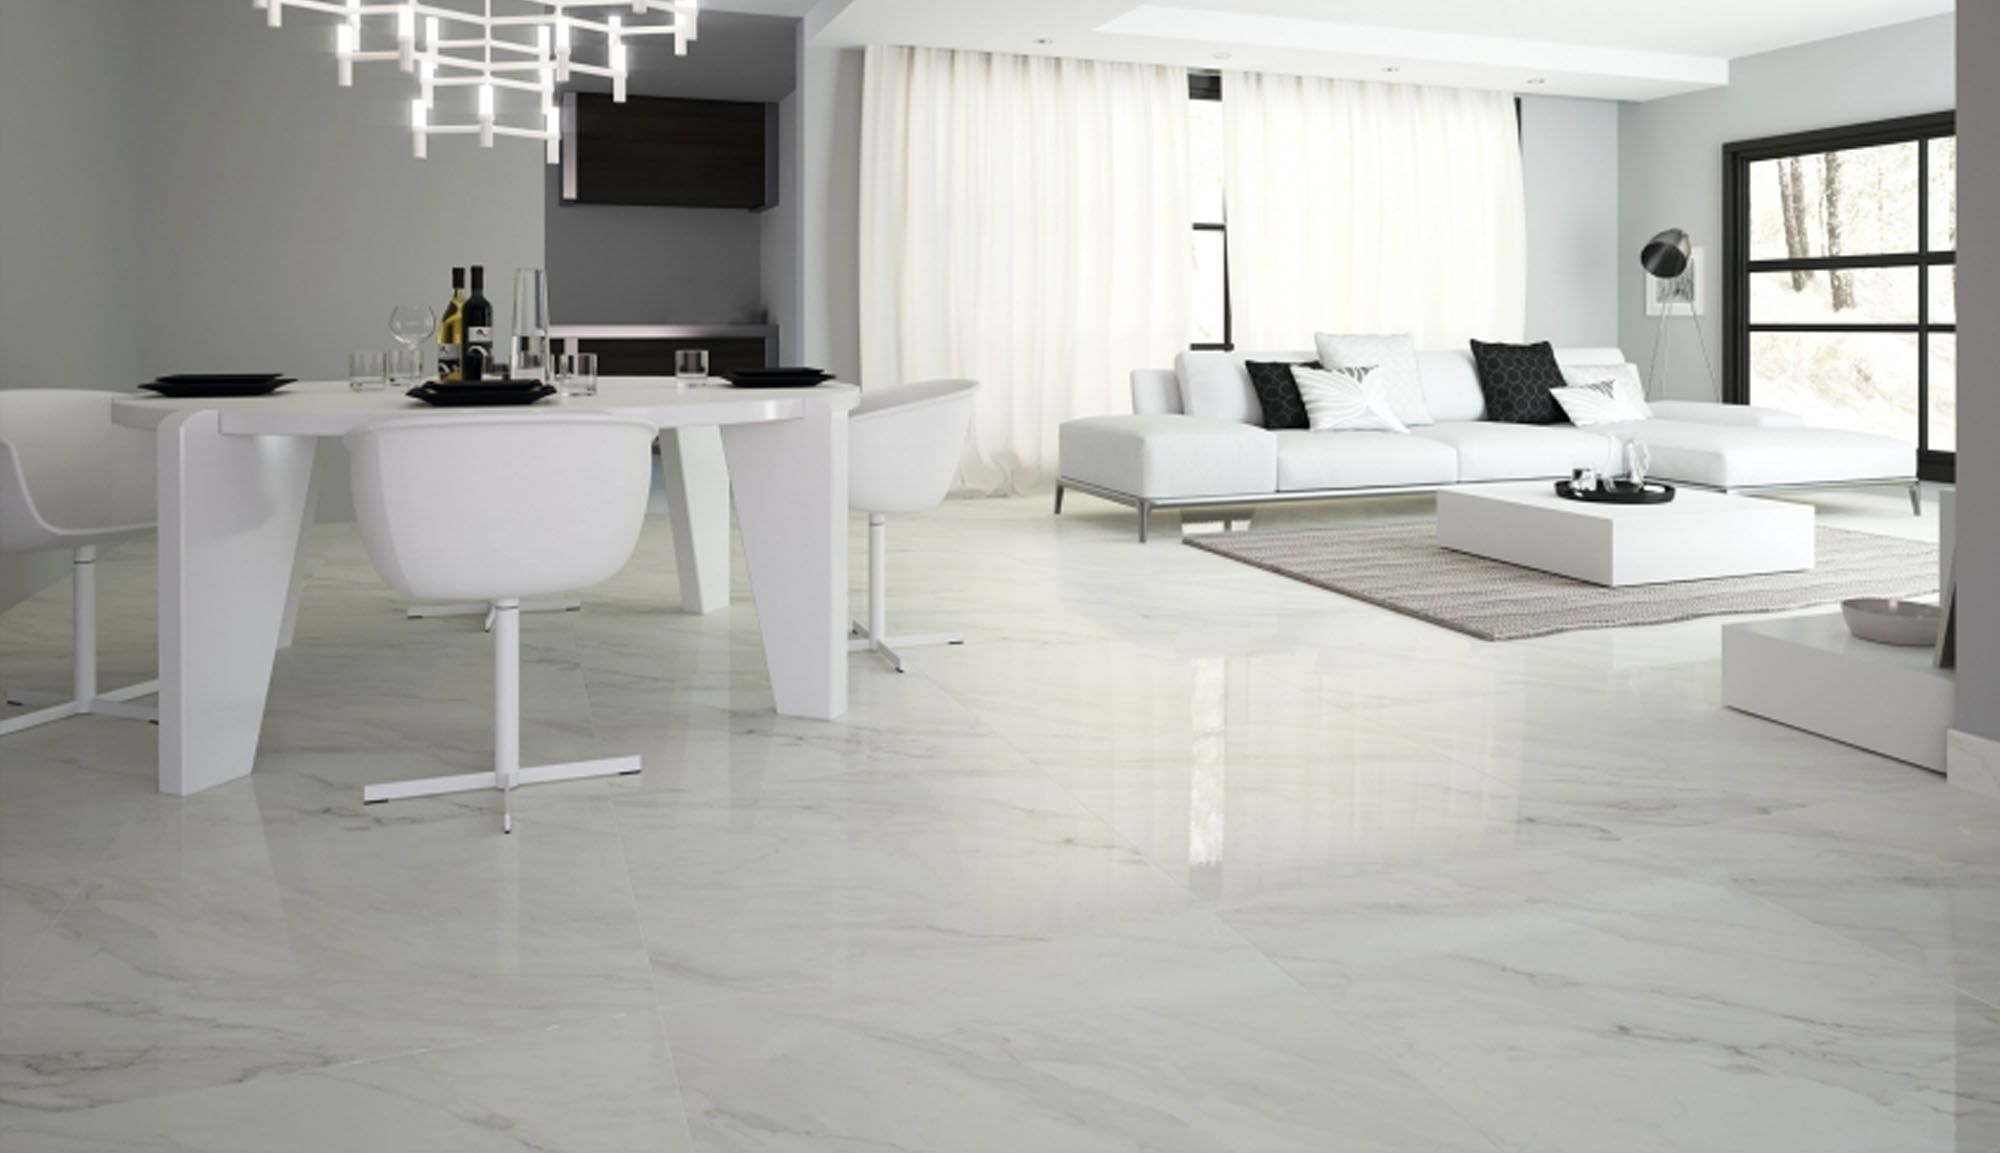 White porcelain tile kitchen calacatta u003cbu003eporcelain best price guaranteed on this stunning gloss white marble effect porcelain floor tile produced in 600 x 600 for the mediterranean villa look dailygadgetfo Gallery